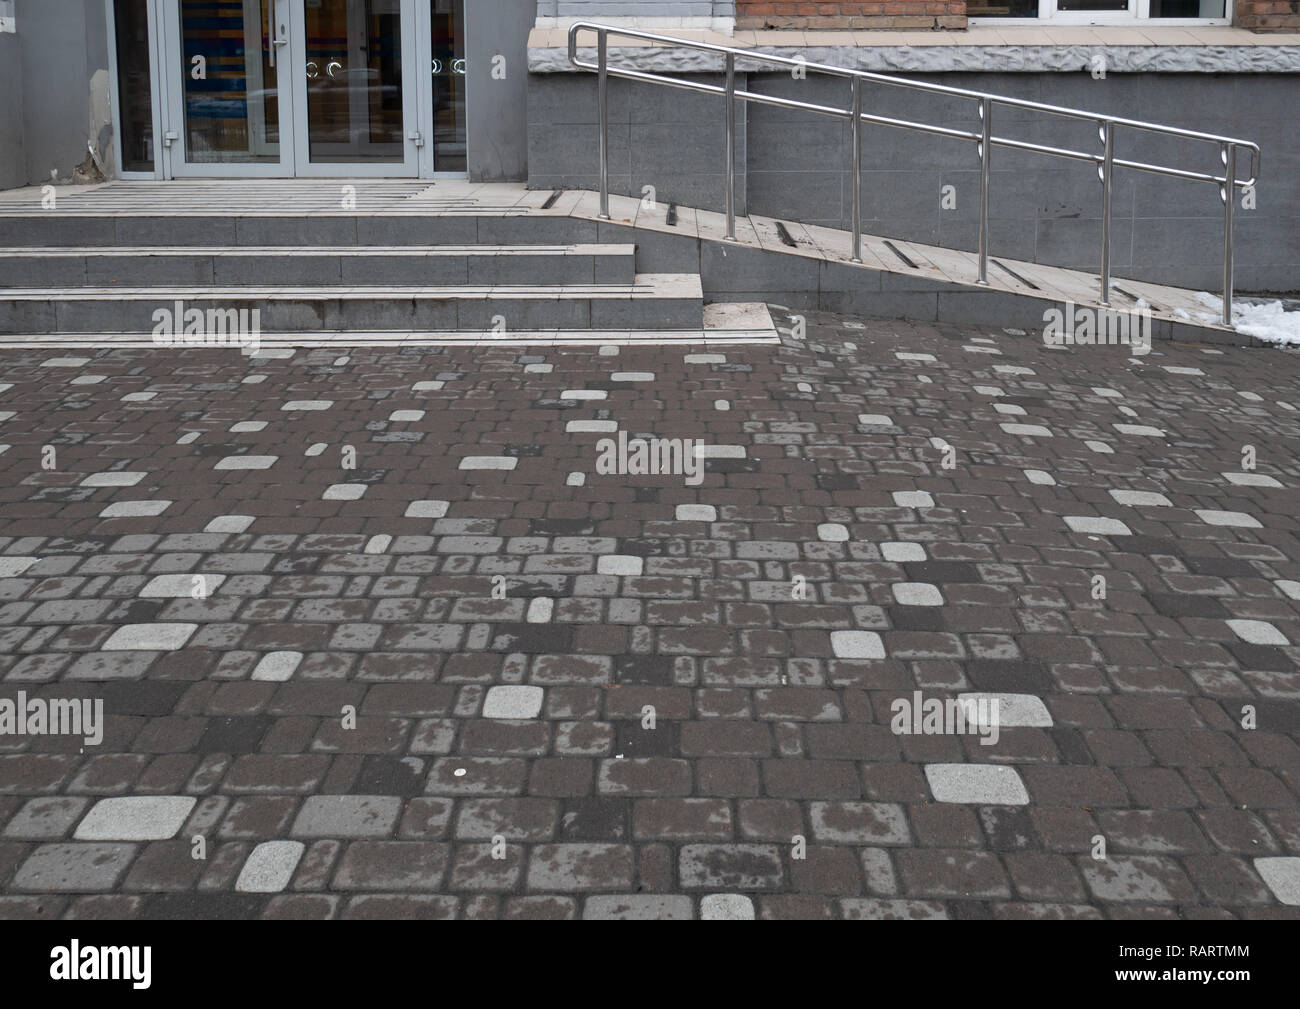 entrance to city store with special ramp for support disabled people using wheelchair - Stock Image